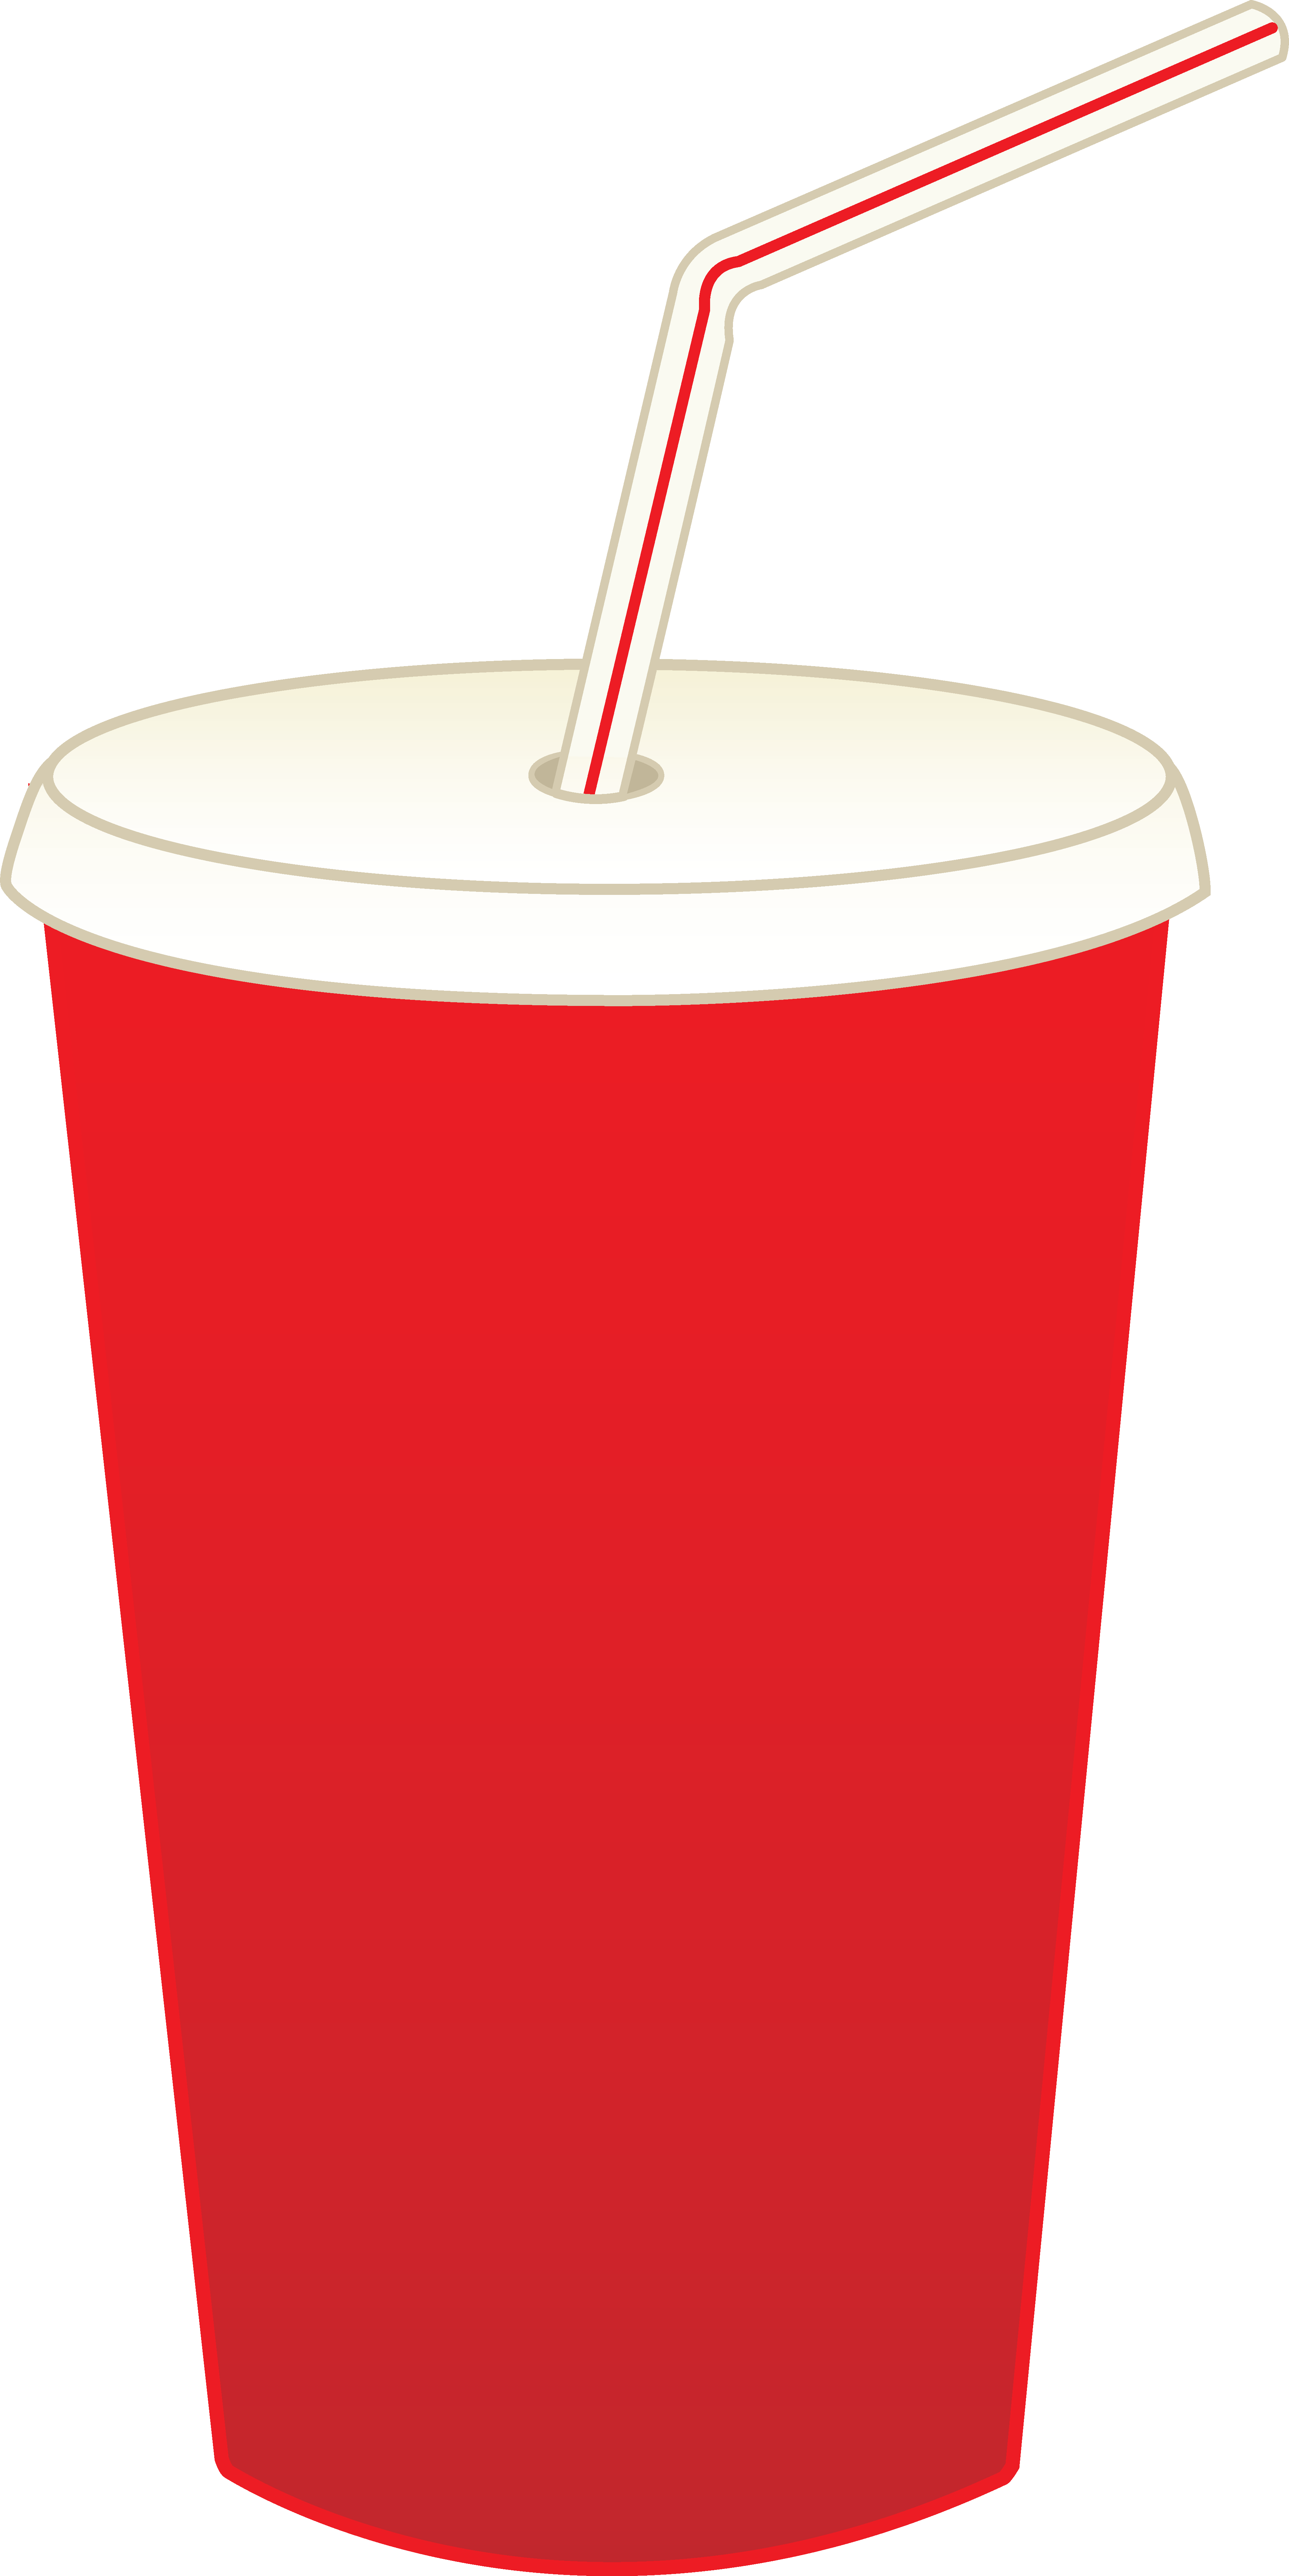 Free Drink Cup Cliparts, Download Free Clip Art, Free Clip.